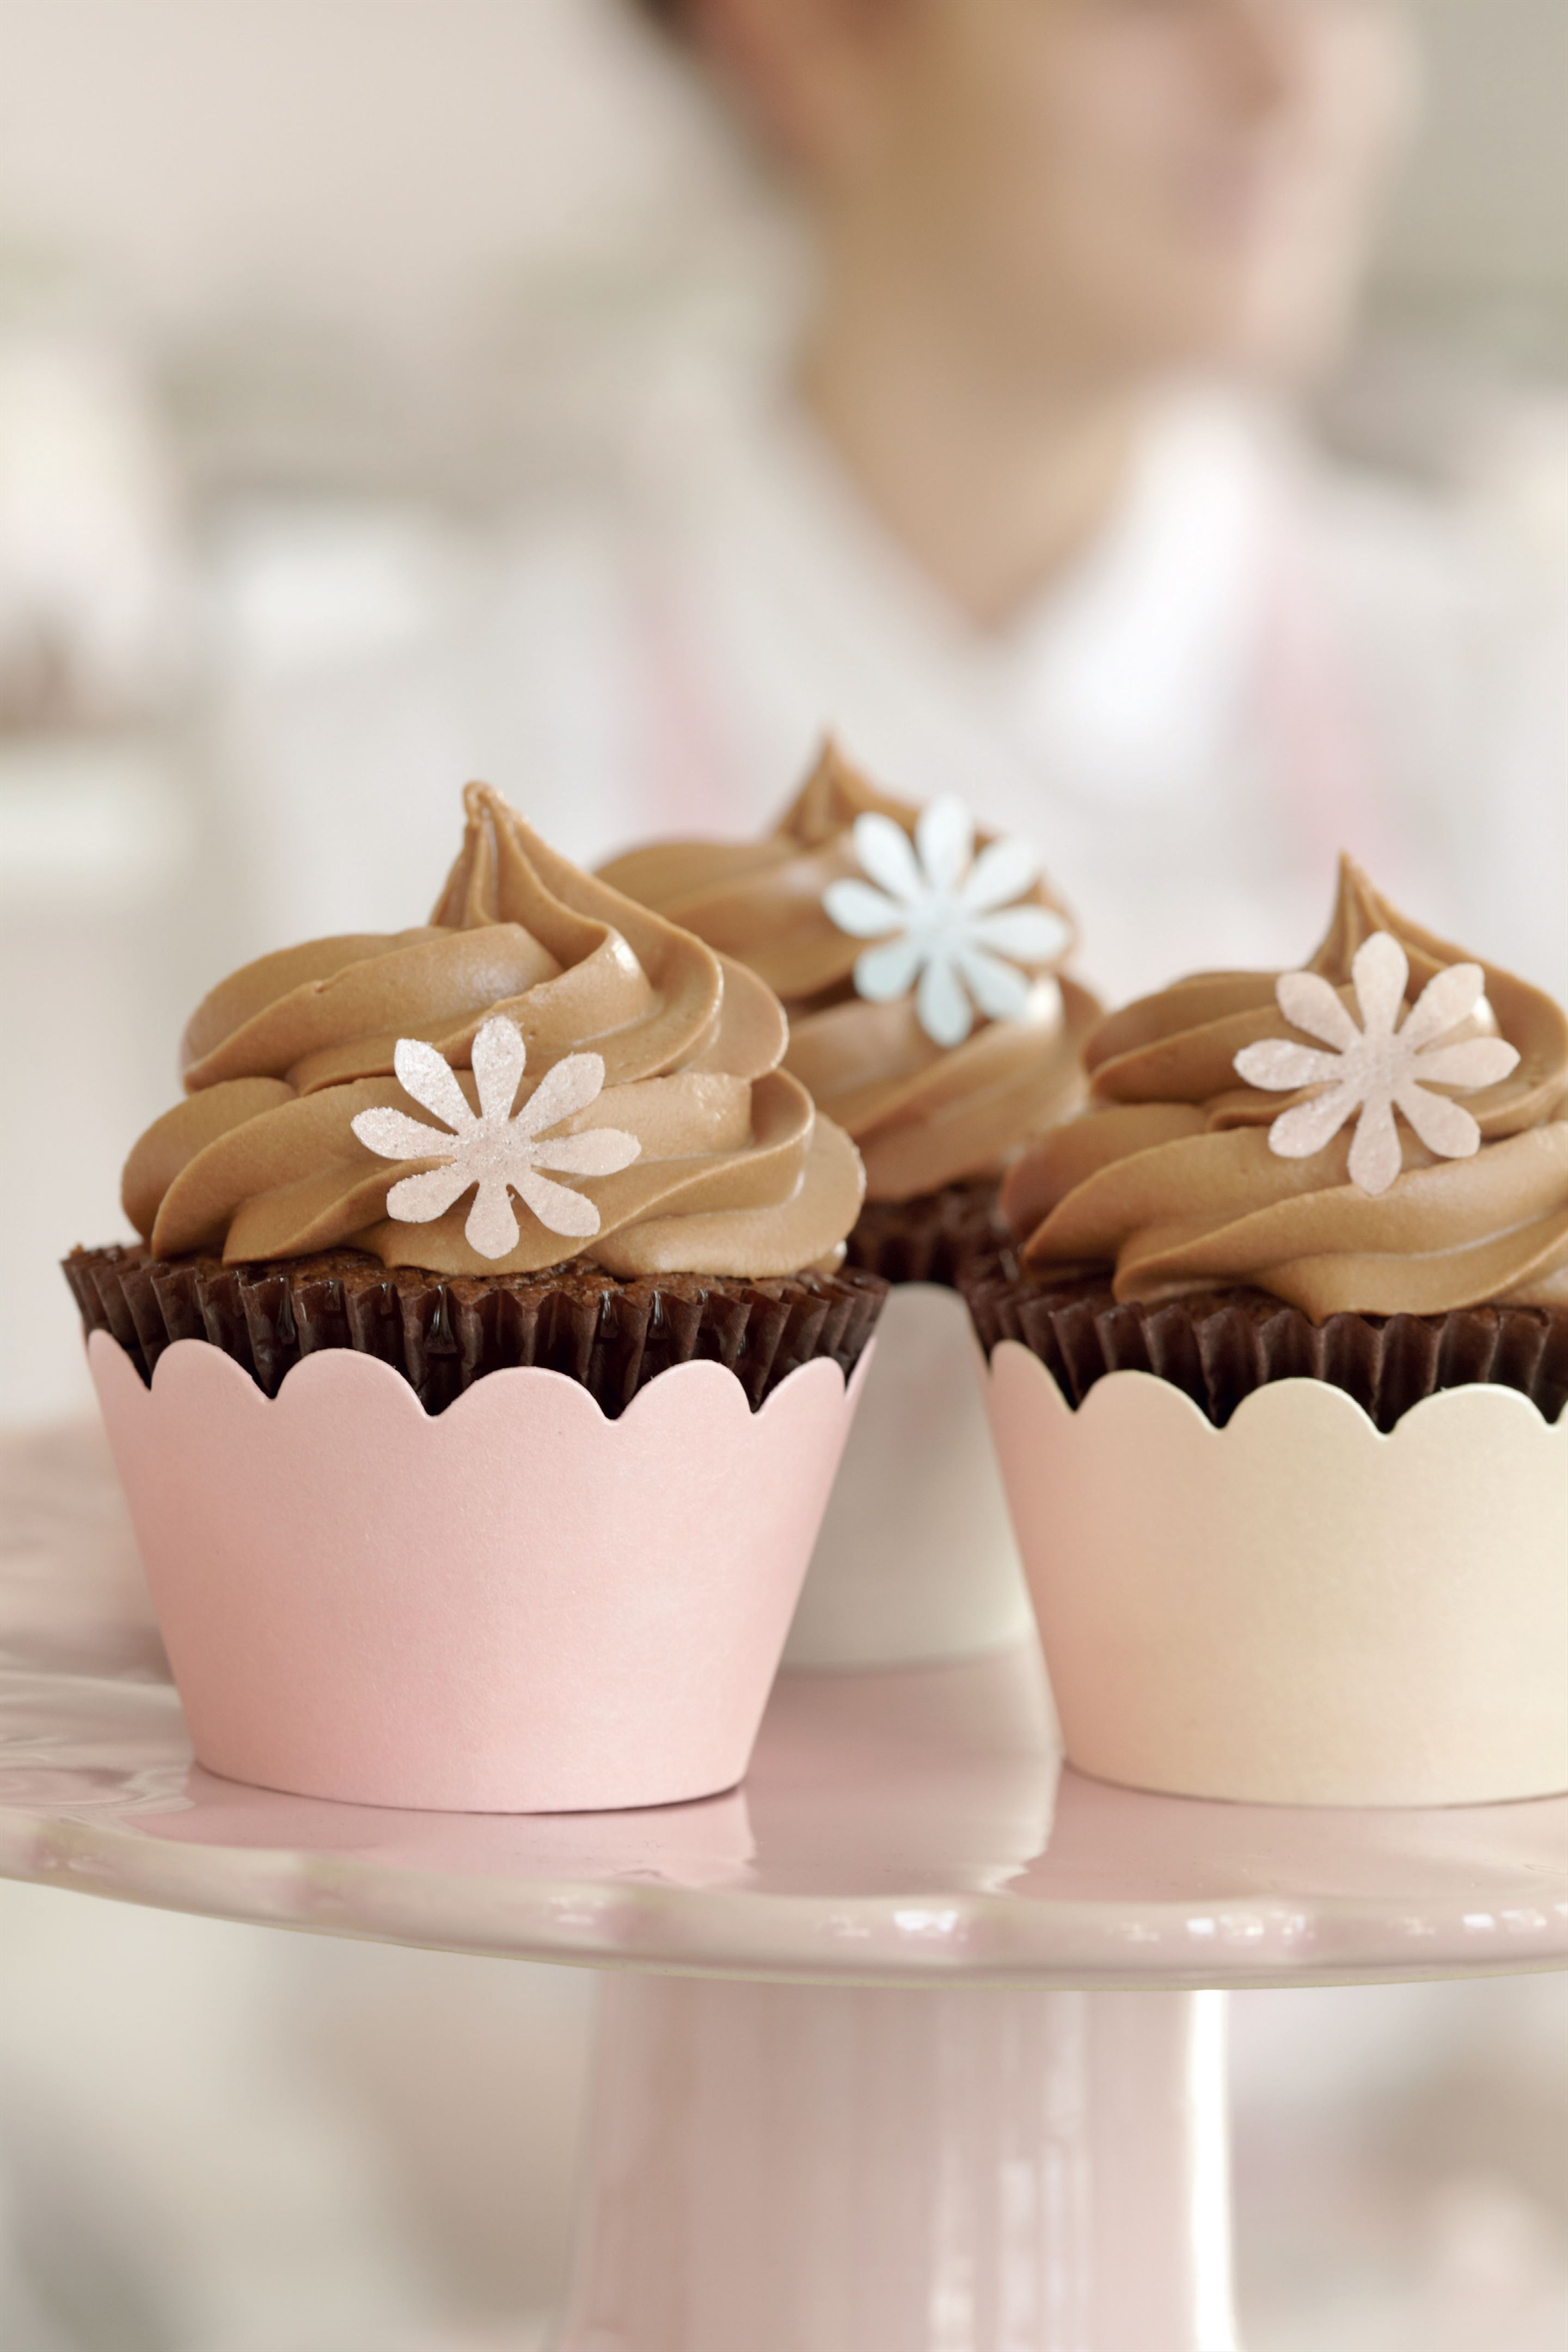 Chocolate heaven cupcakes